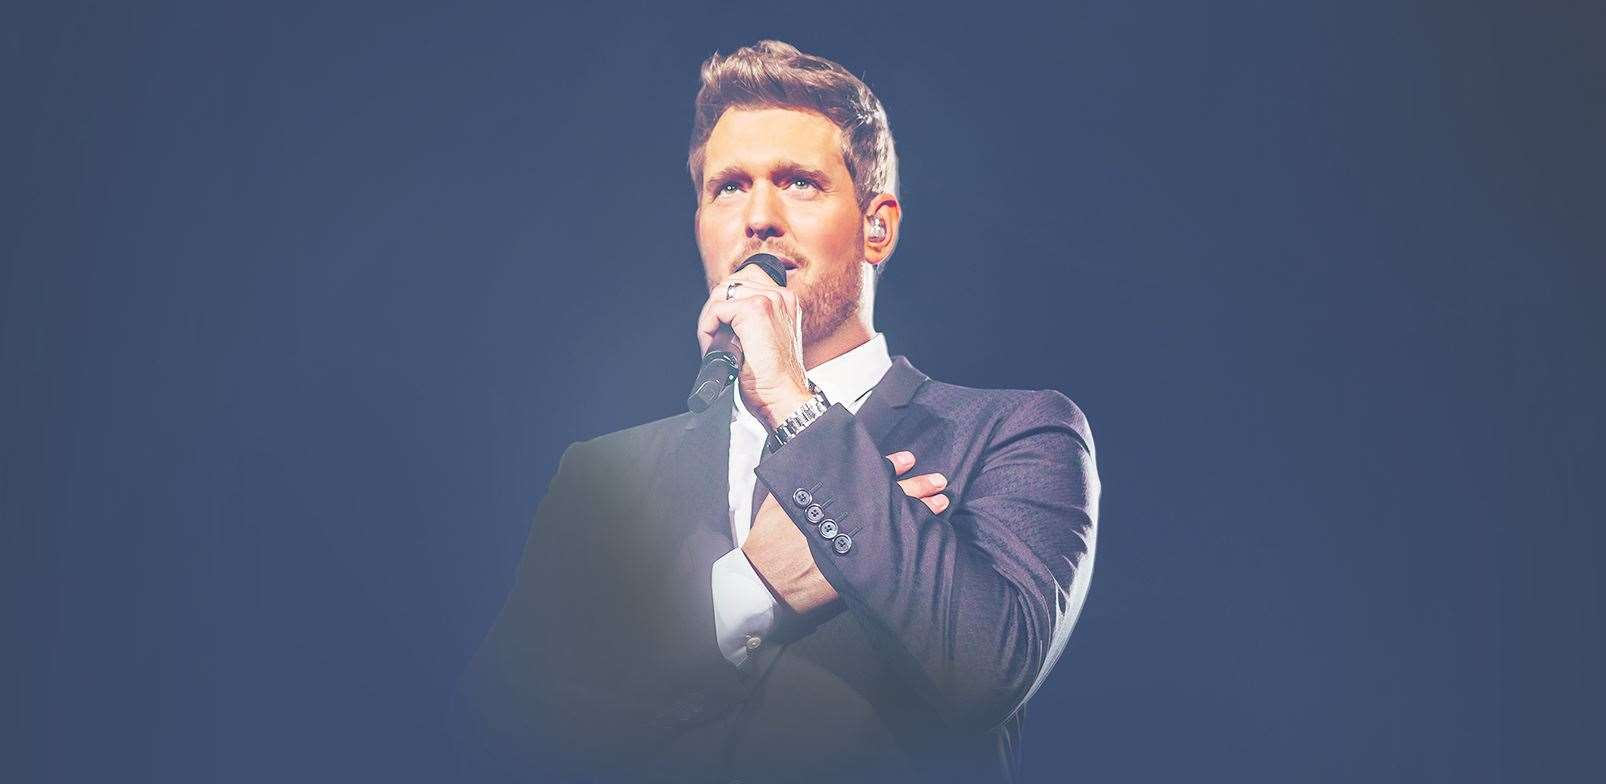 Superstar Michael Buble is coming to Canterbury